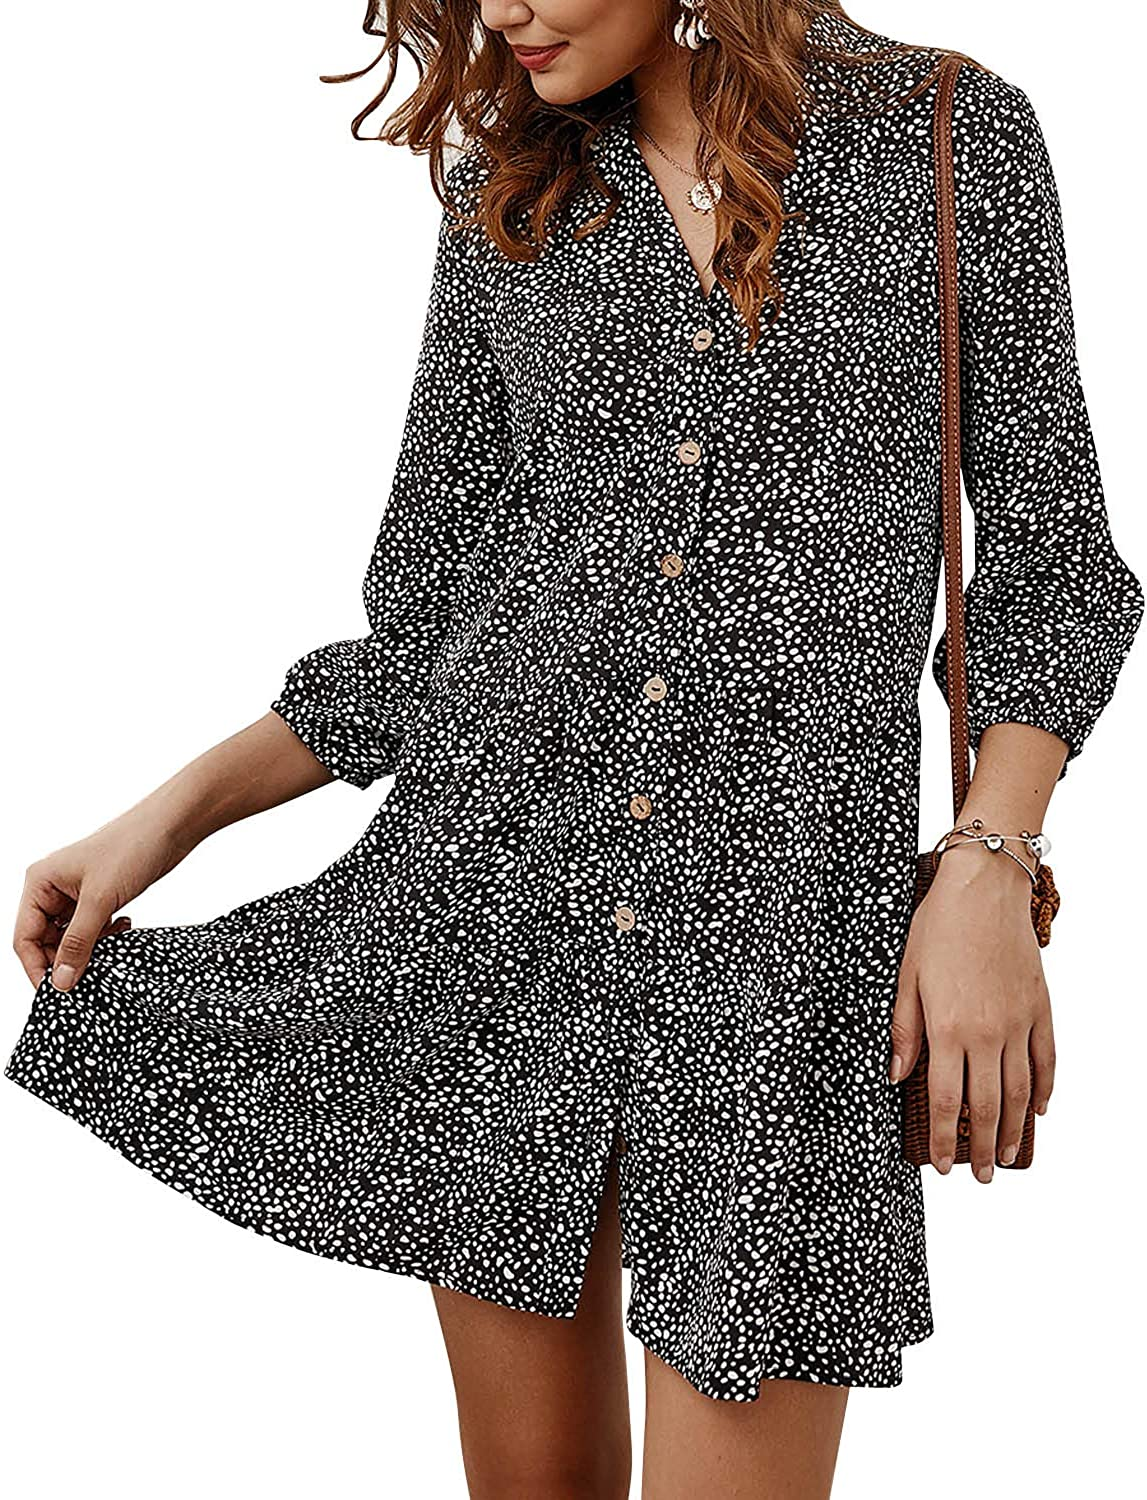 SOLERSUN Womens Casual Leopard Tunic Dress Long Sleeve V Neck Loose Swing Babydoll Dresses